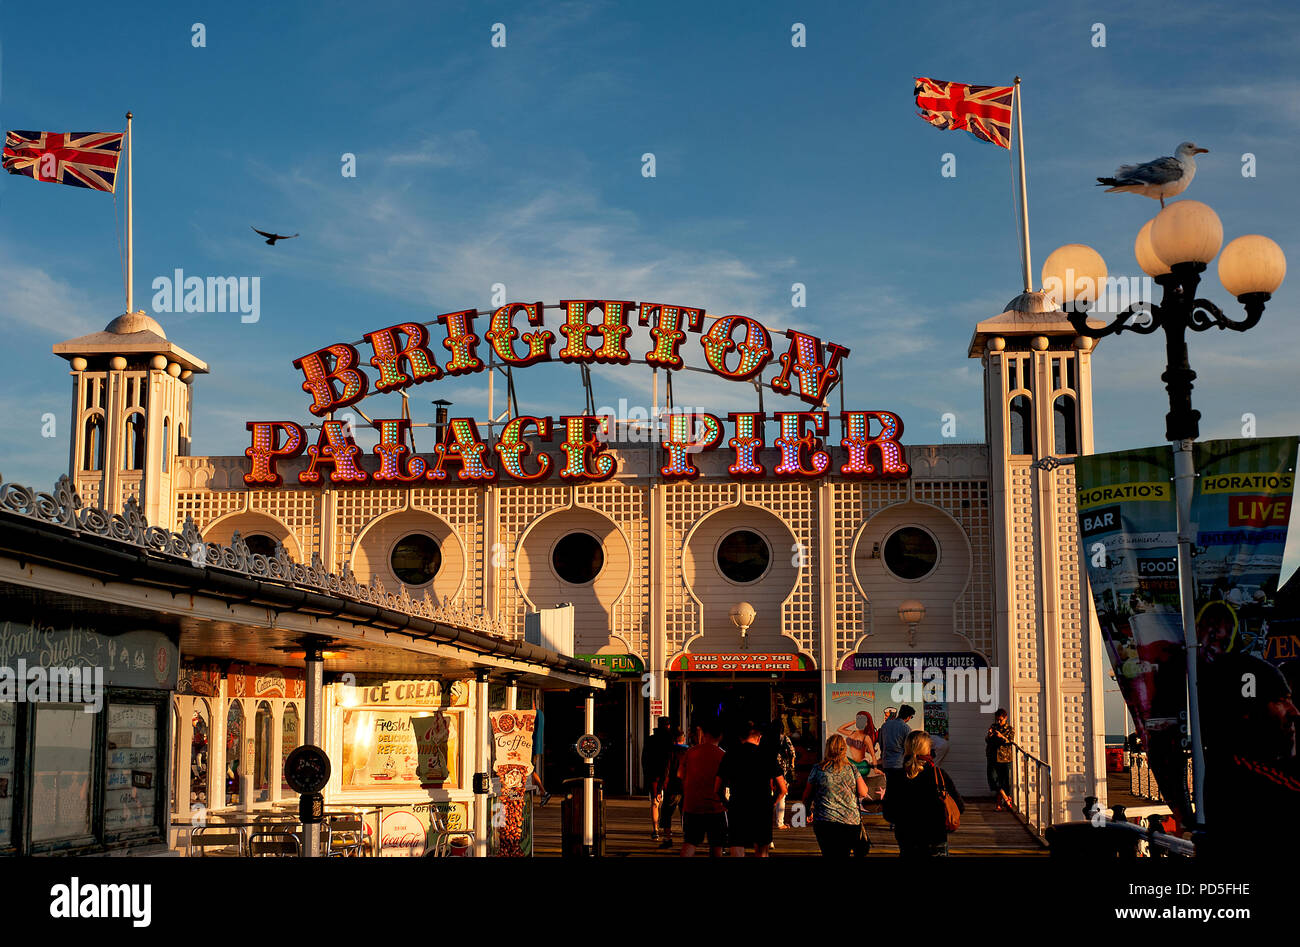 The famous Brighton Palace Pier on England's south coast changed its name in 2018 to Brighton Palace Pier, a combination of its two previous names. - Stock Image